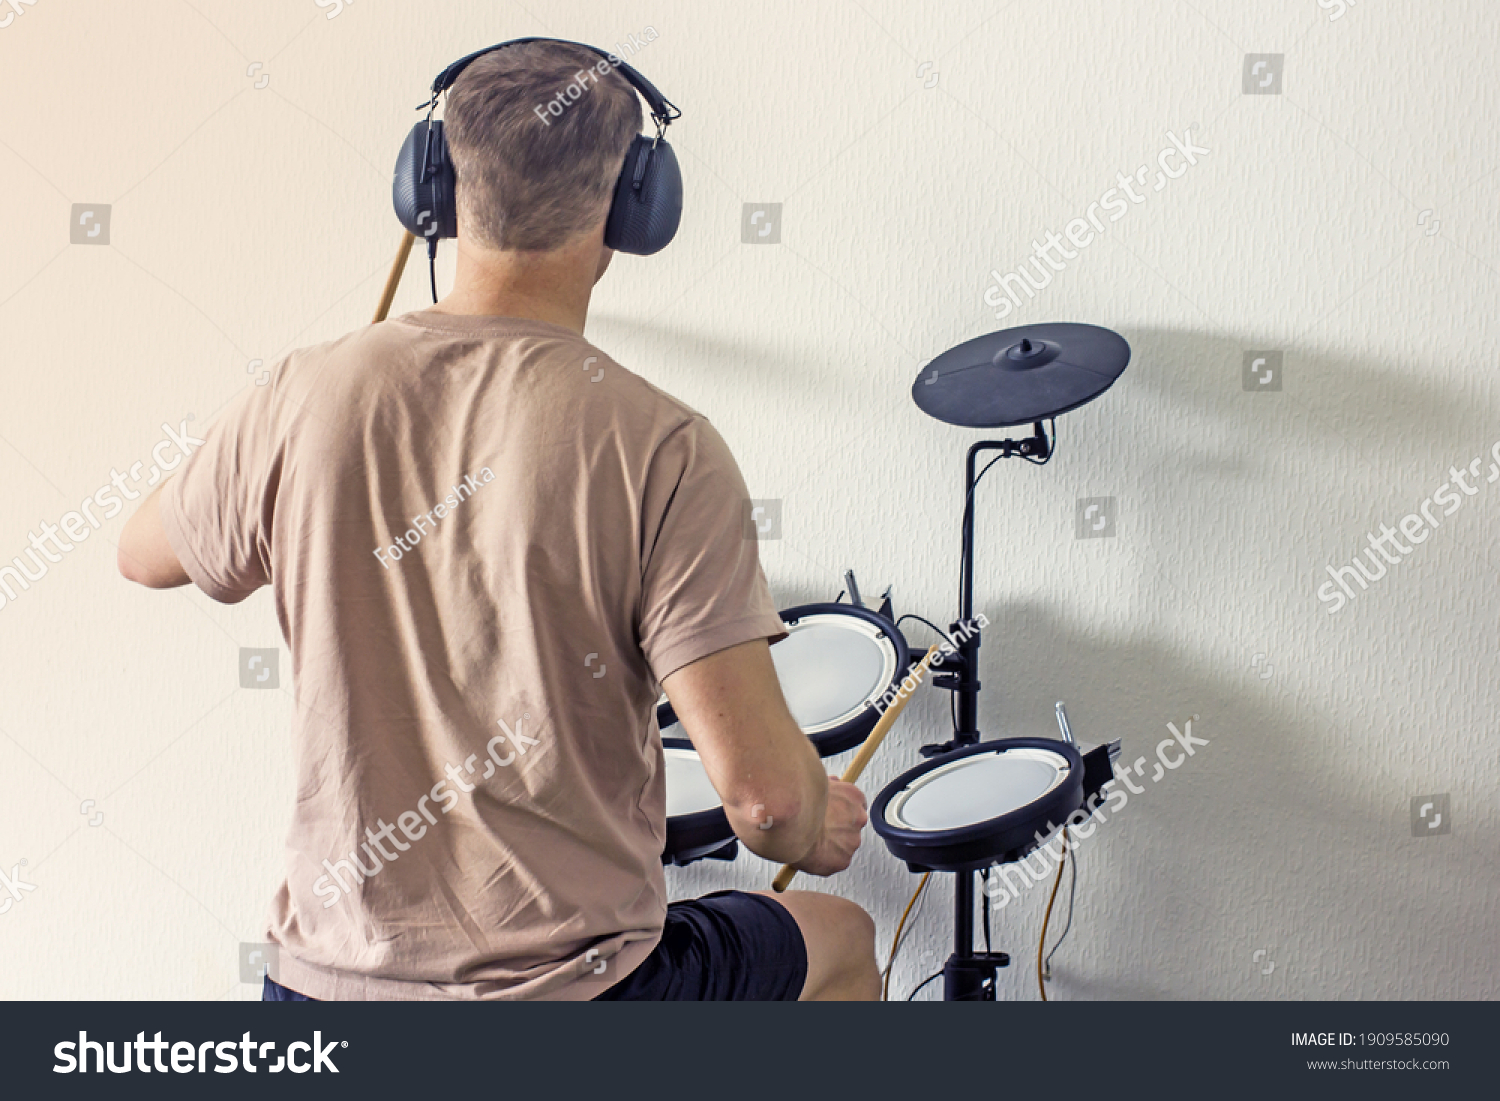 A man without a face in a light T-shirt with headphones and drumsticks playing an electronic drum kit at home, rear view. Home art hobbies authentic concept. Musical hobby drums #1909585090